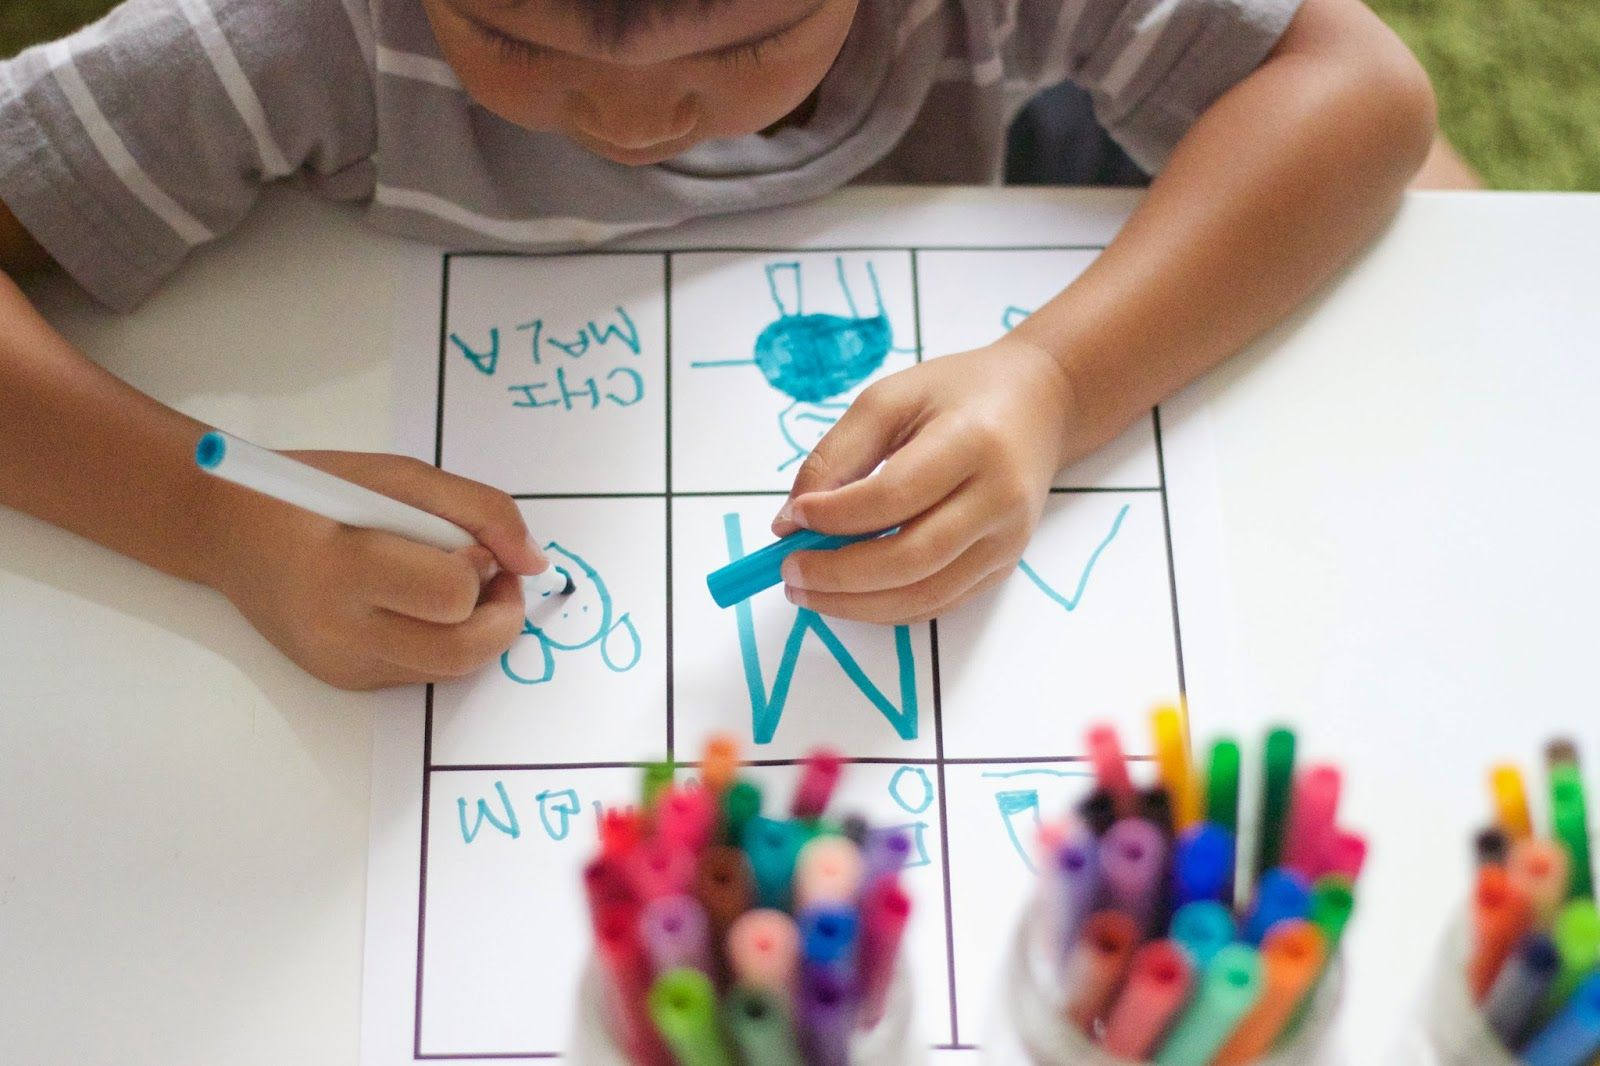 A Simple Initial Sound Phonics Activity That Uses Everyday